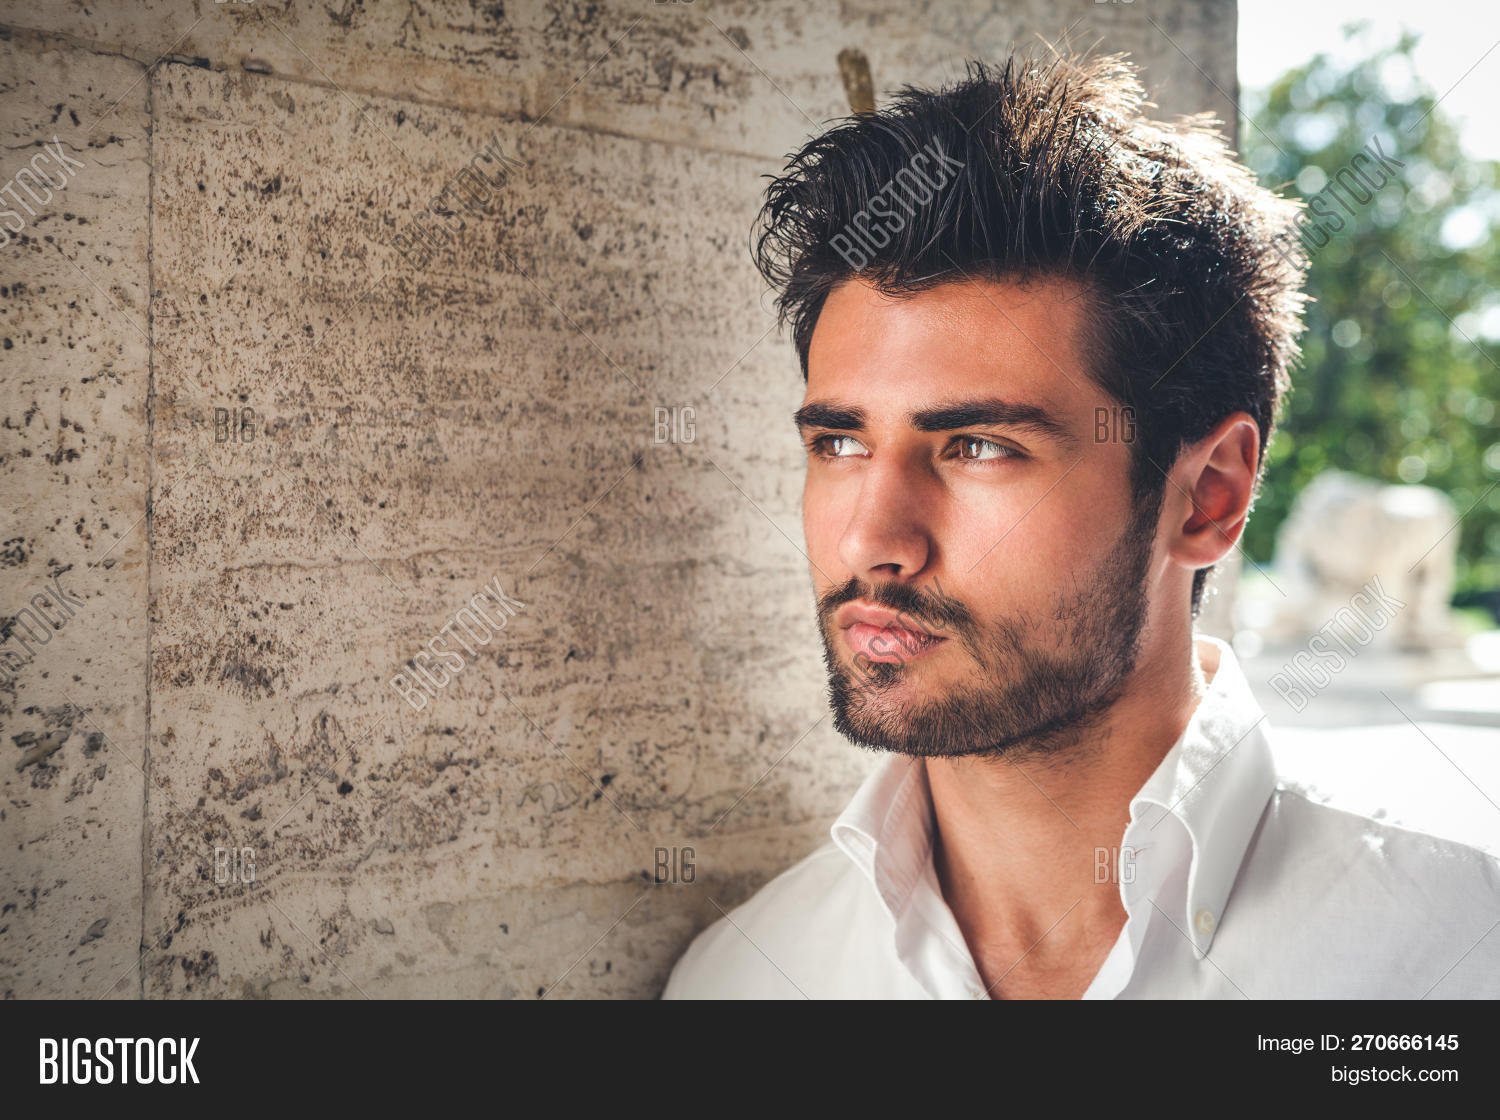 Handsome Young Man Image & Photo (Free Trial) | Bigstock